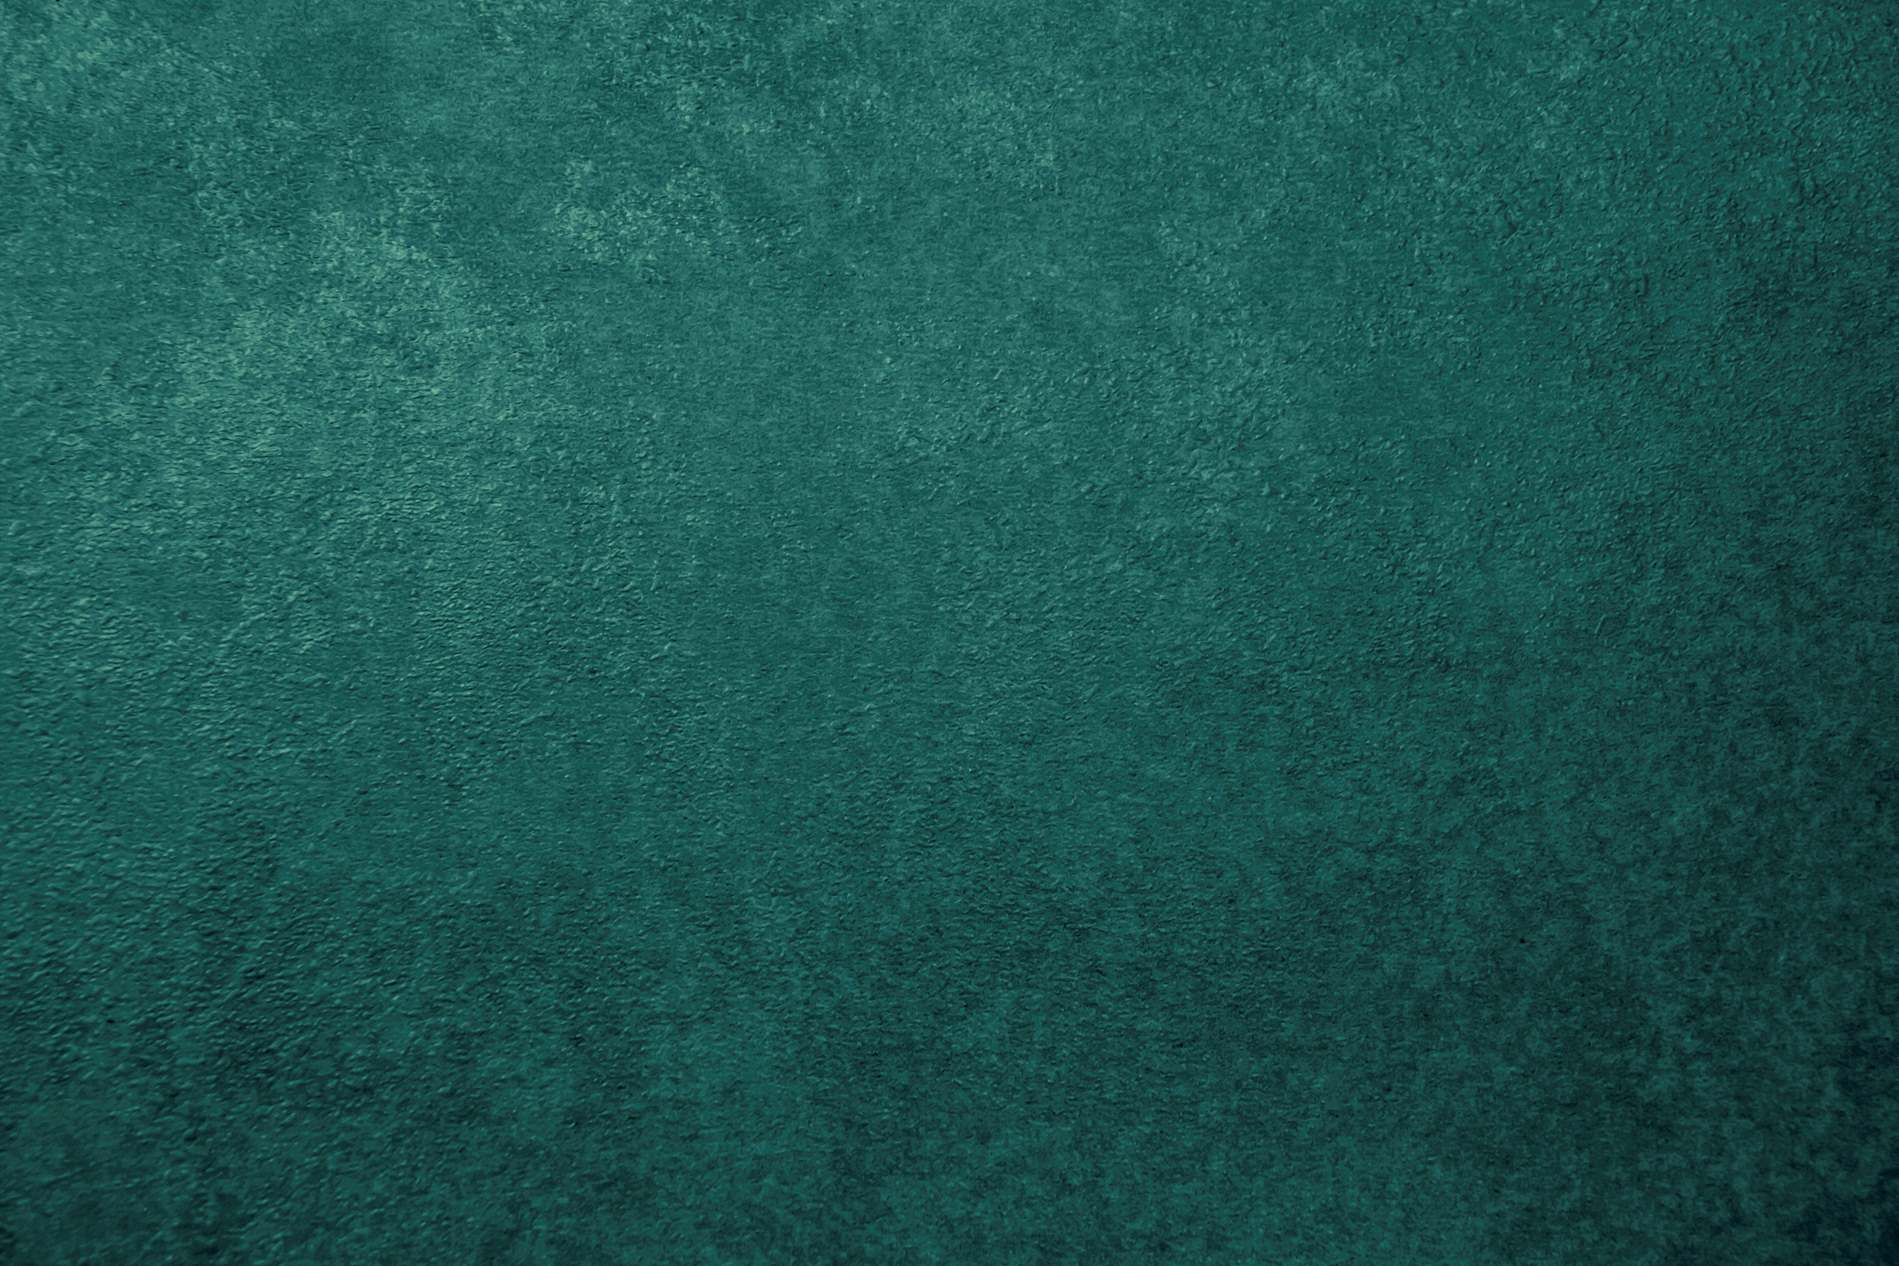 Dark Green Wall Texture Vintage Background Photohdx